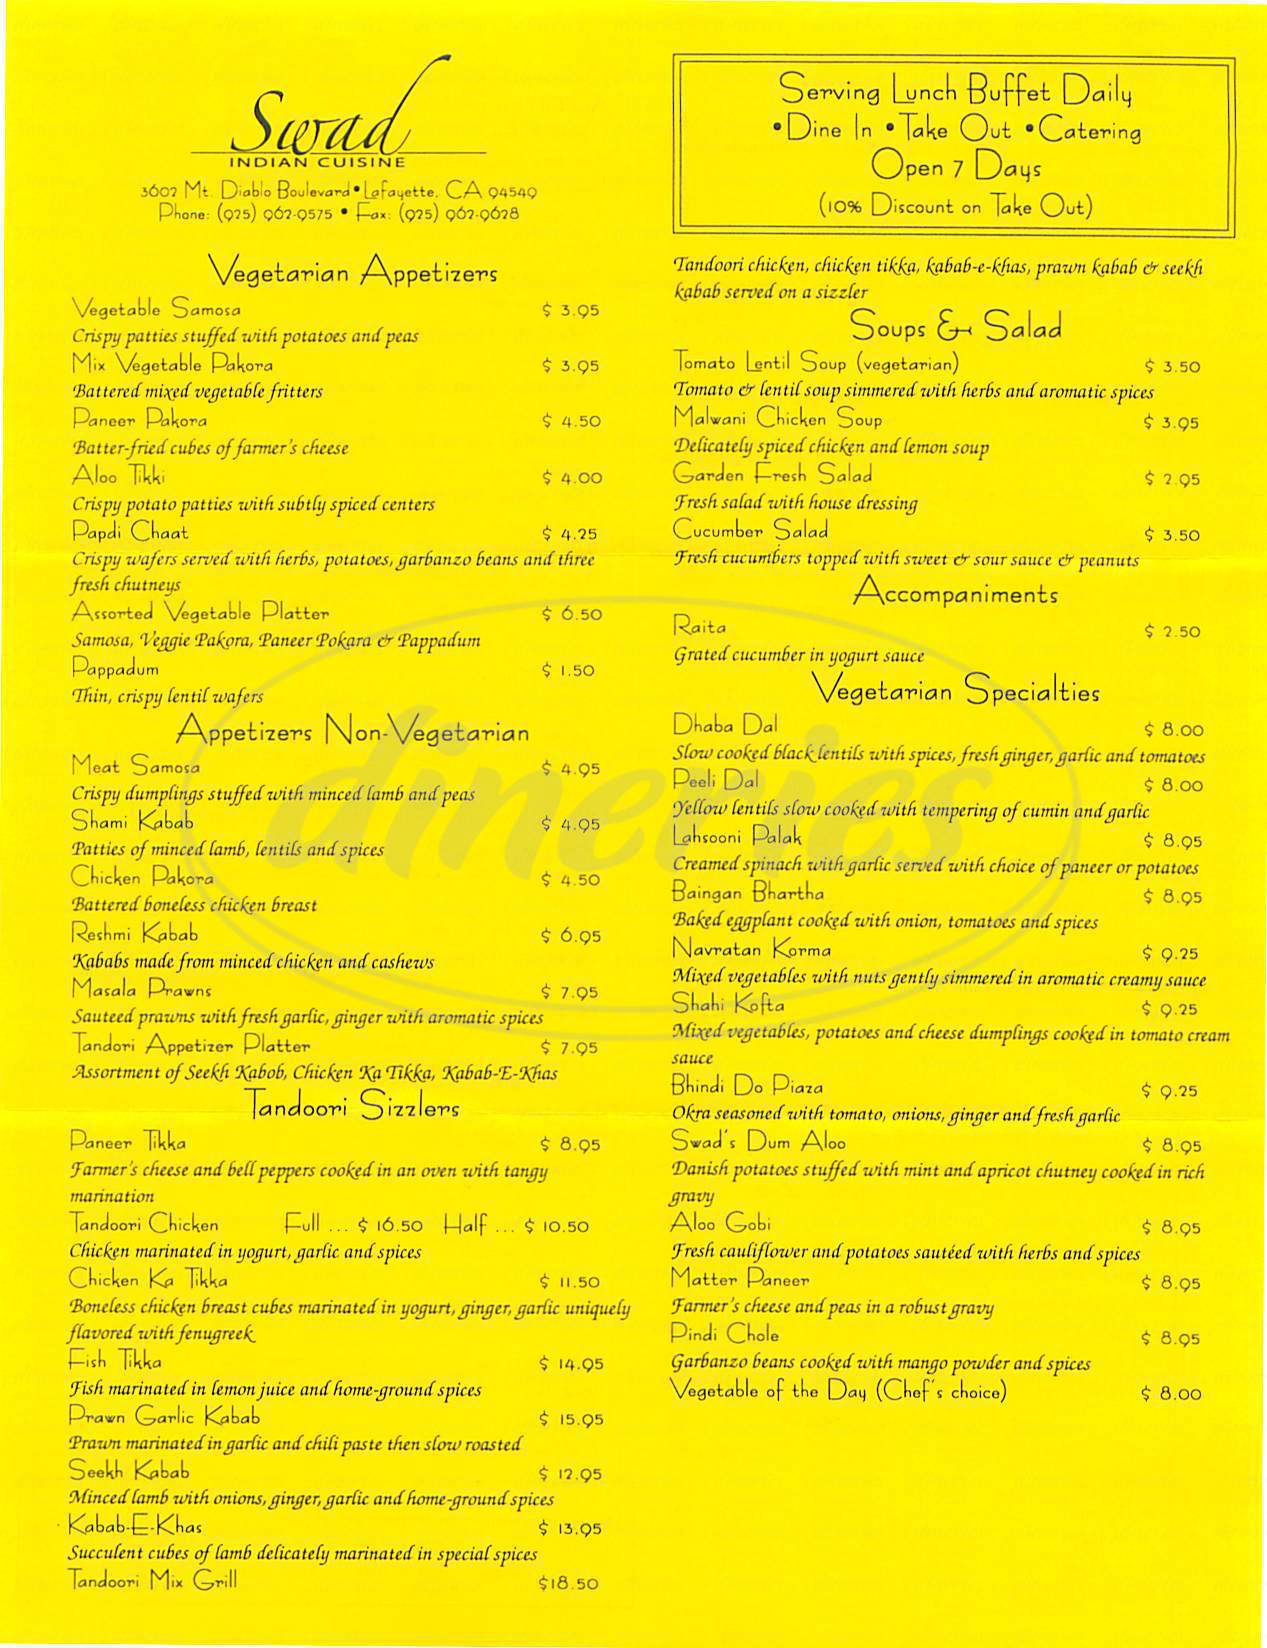 menu for Swad Indian Cuisine